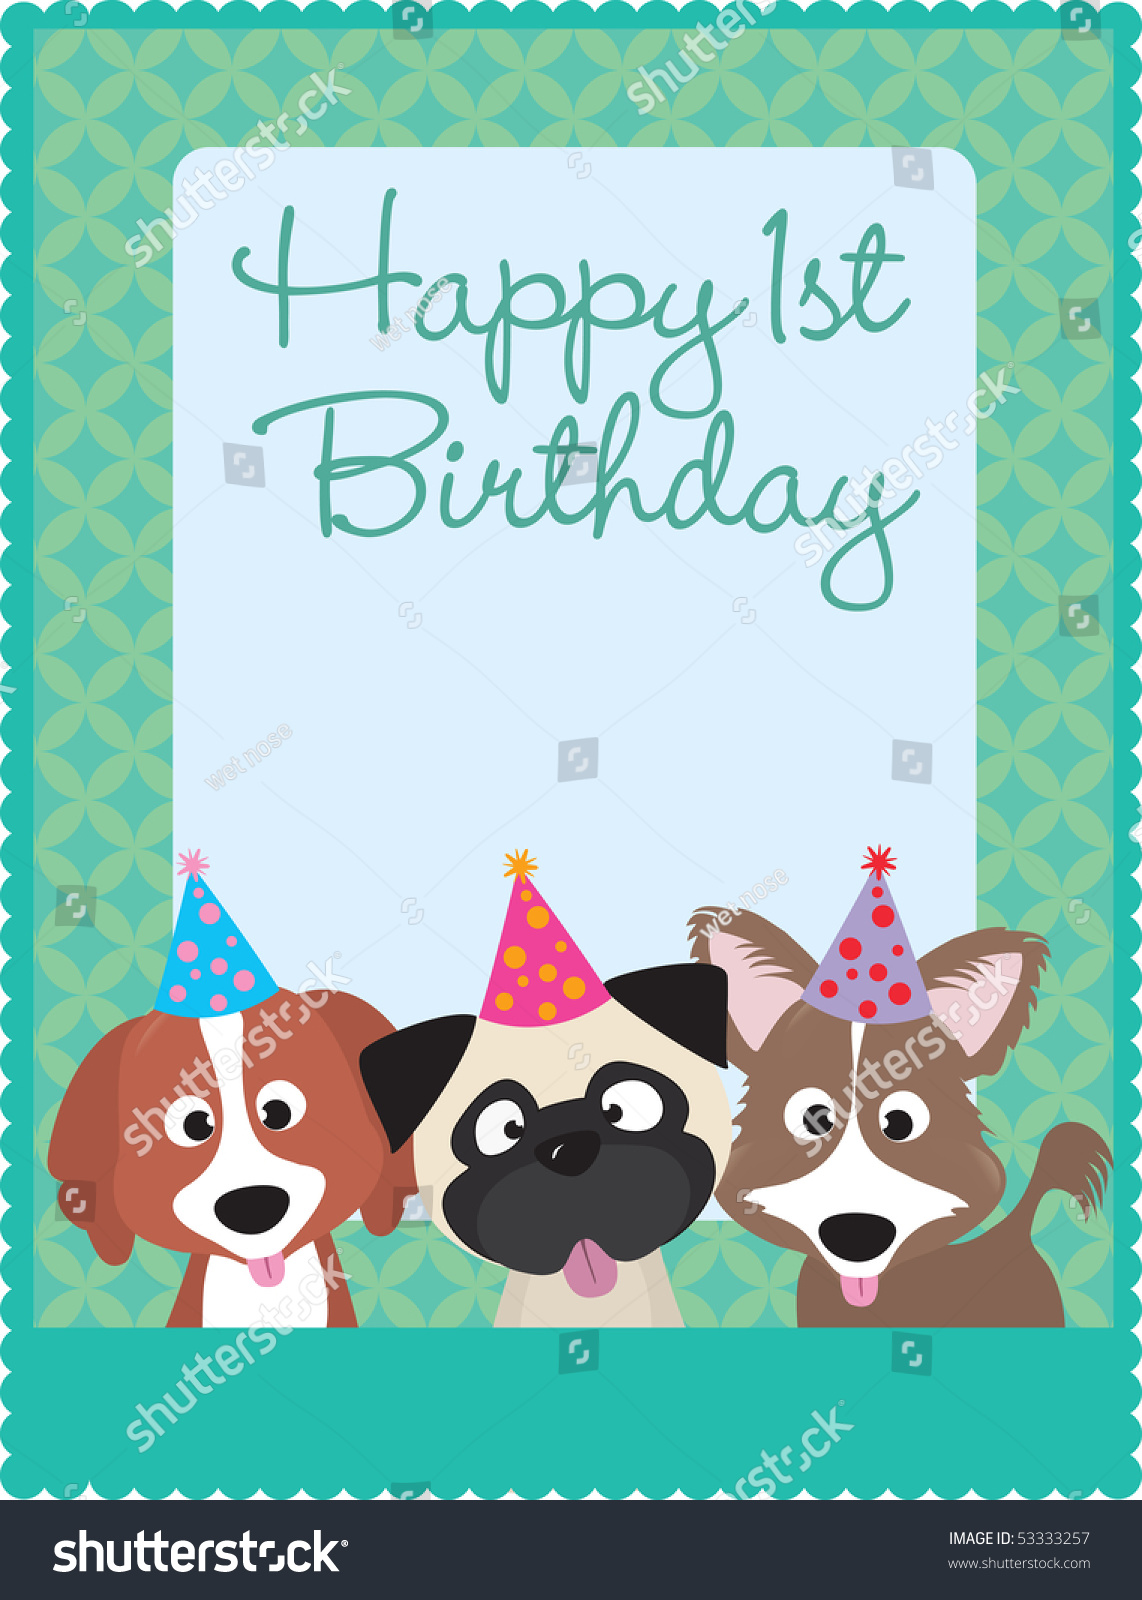 Happy 1st Birthday Puppies Stock Vector Illustration 53333257 Shutterstock